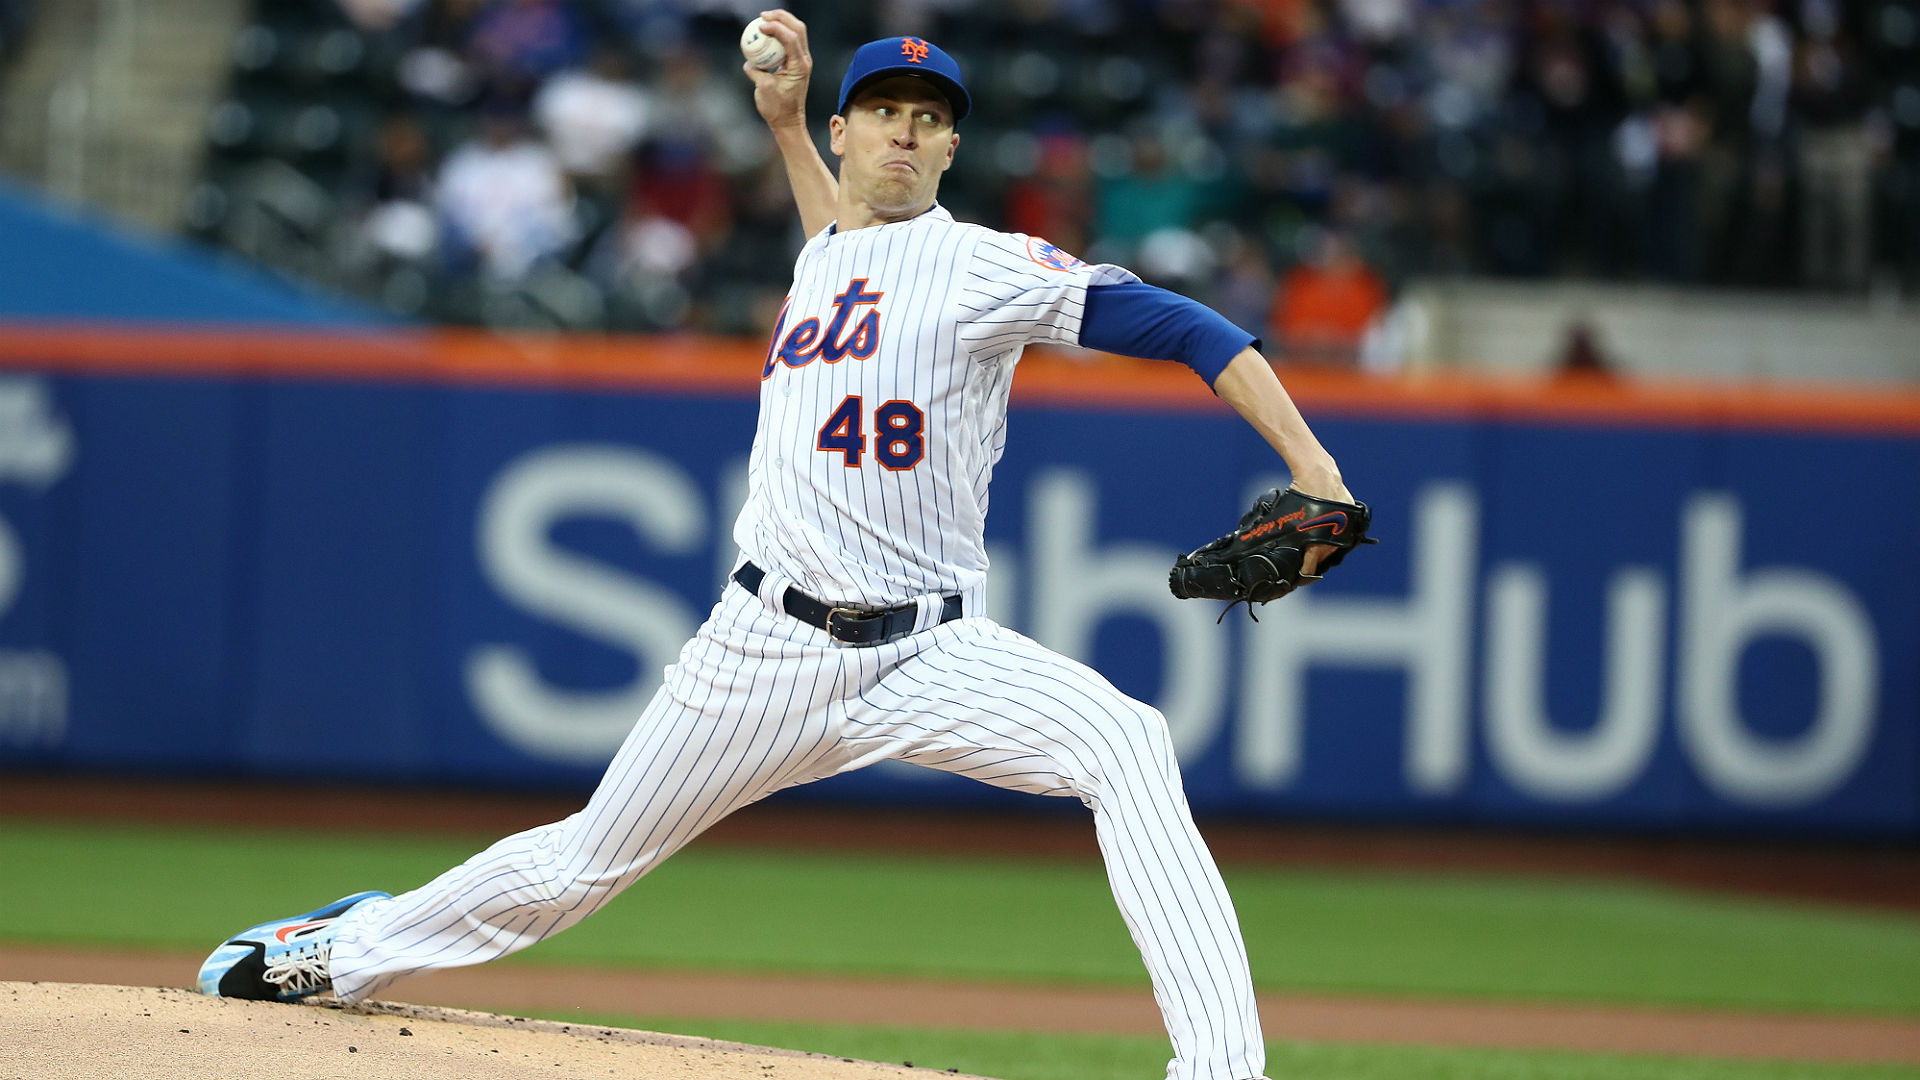 Degrom-jacob-usnews-051818-ftr-getty_1t0dkypvrk7rt1qnggrzj8054a